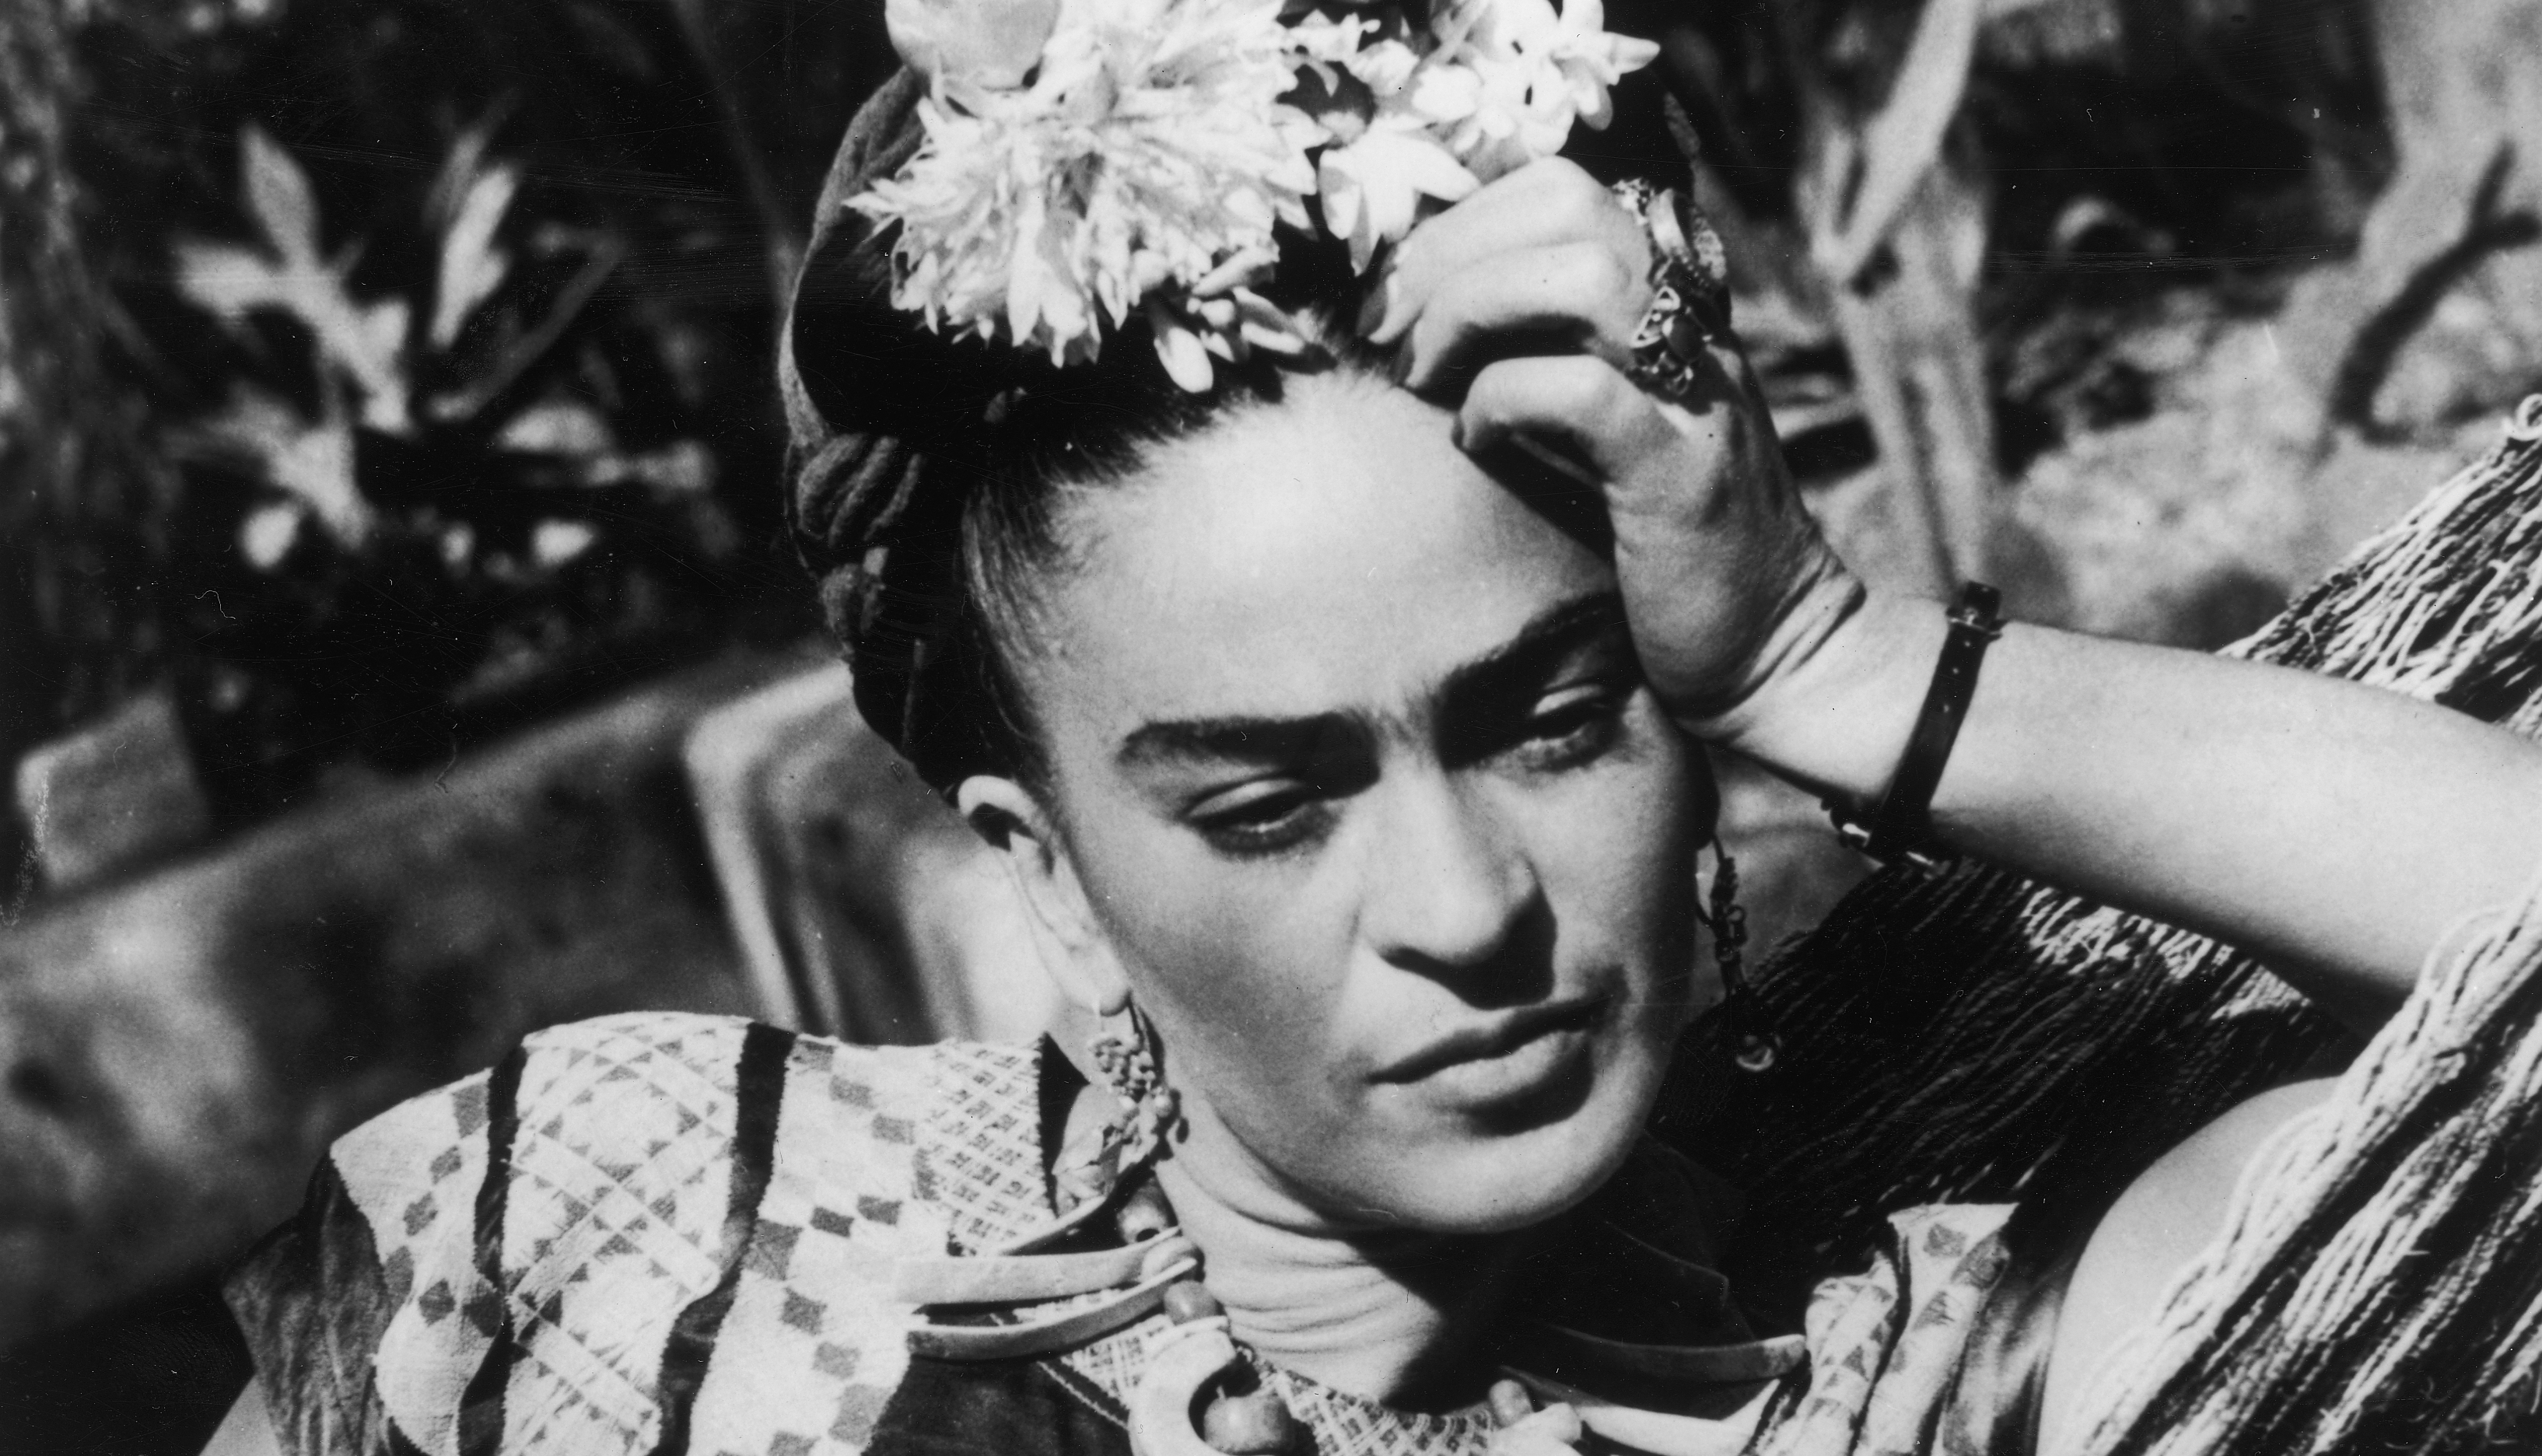 This May Be the Only Recording in Existence of Frida Kahlo's Voice